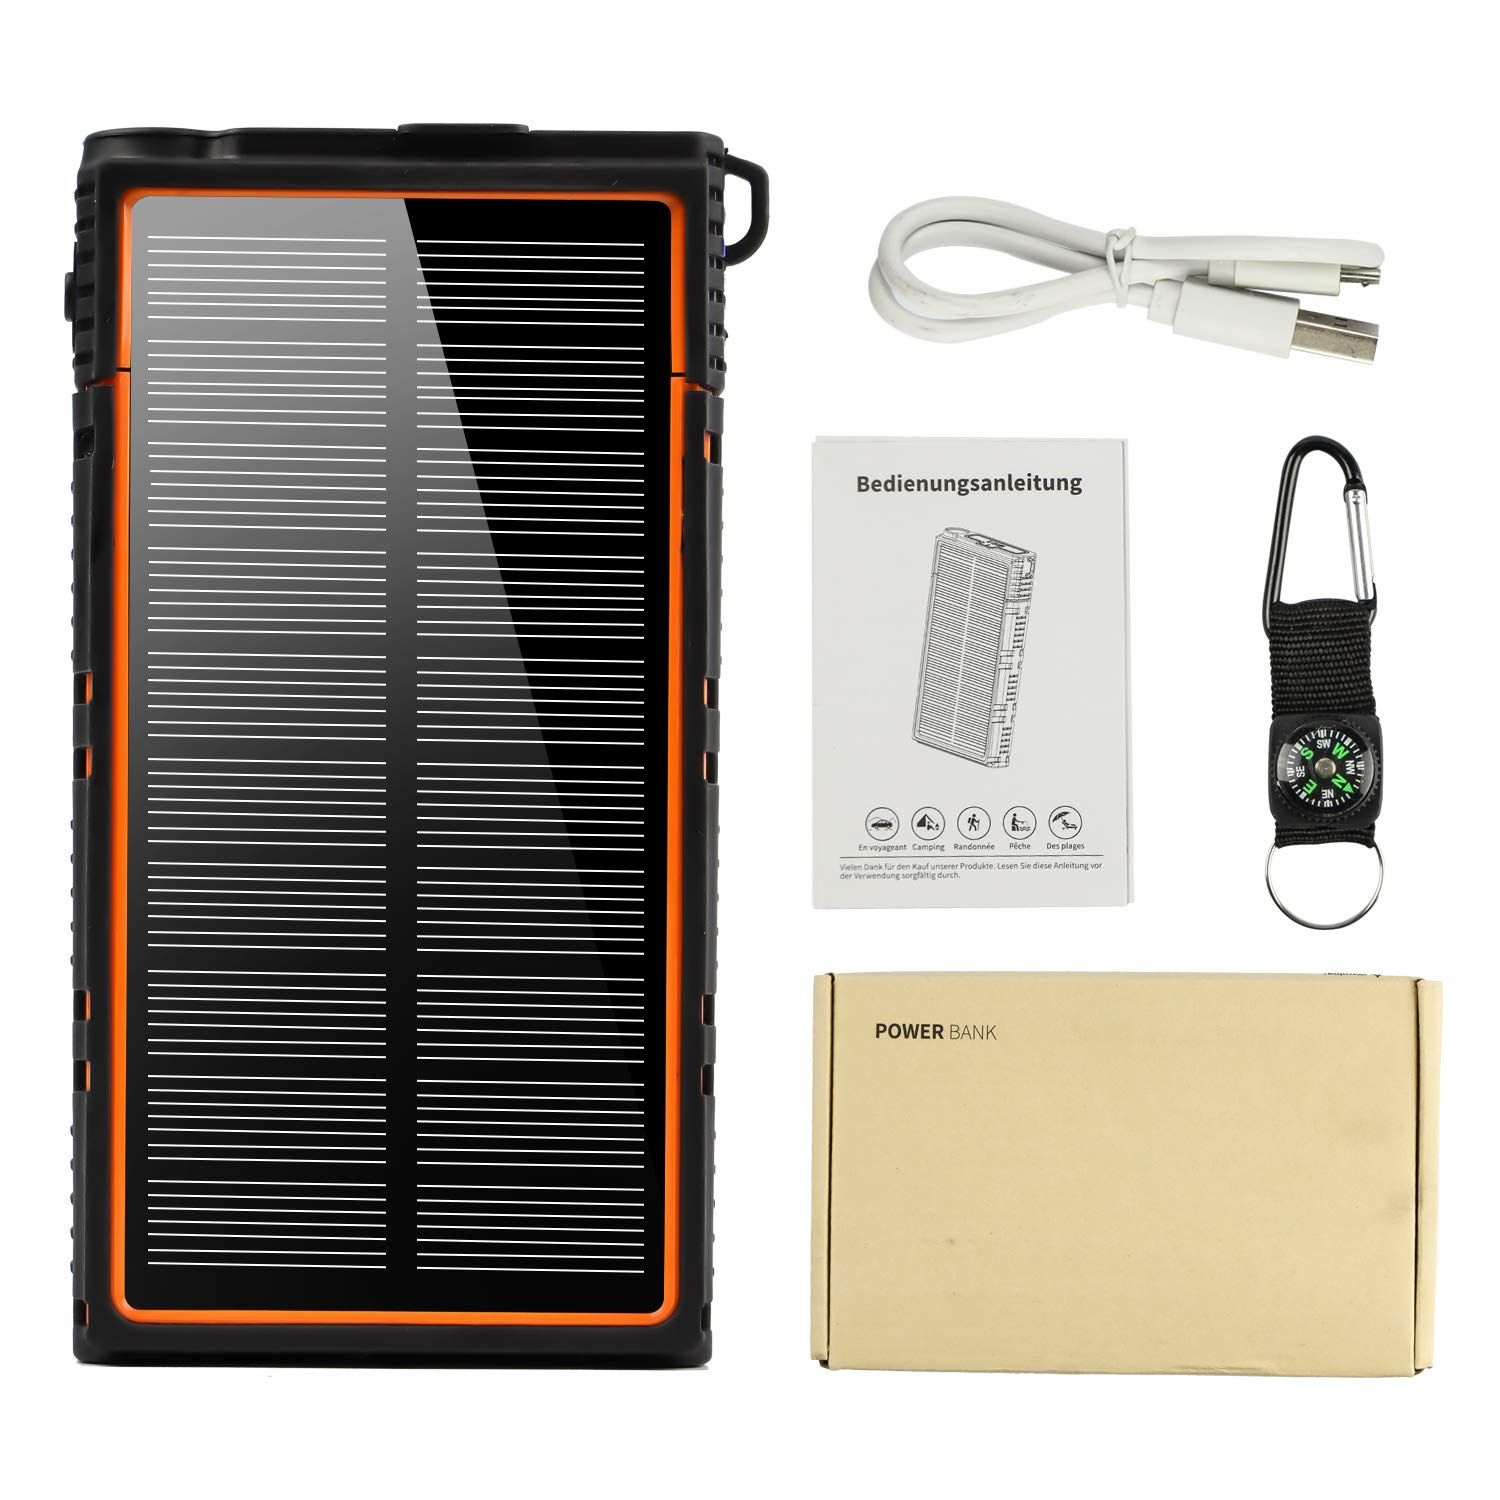 soyond Solar Power Bank-15000 mAh Portable Solar Battery Phone Charger Dual USB Waterproof 2 Led Light Flashlight with Compass for Camping Outdoor Hiking for Smartphones (Orange) by soyond (Image #7)